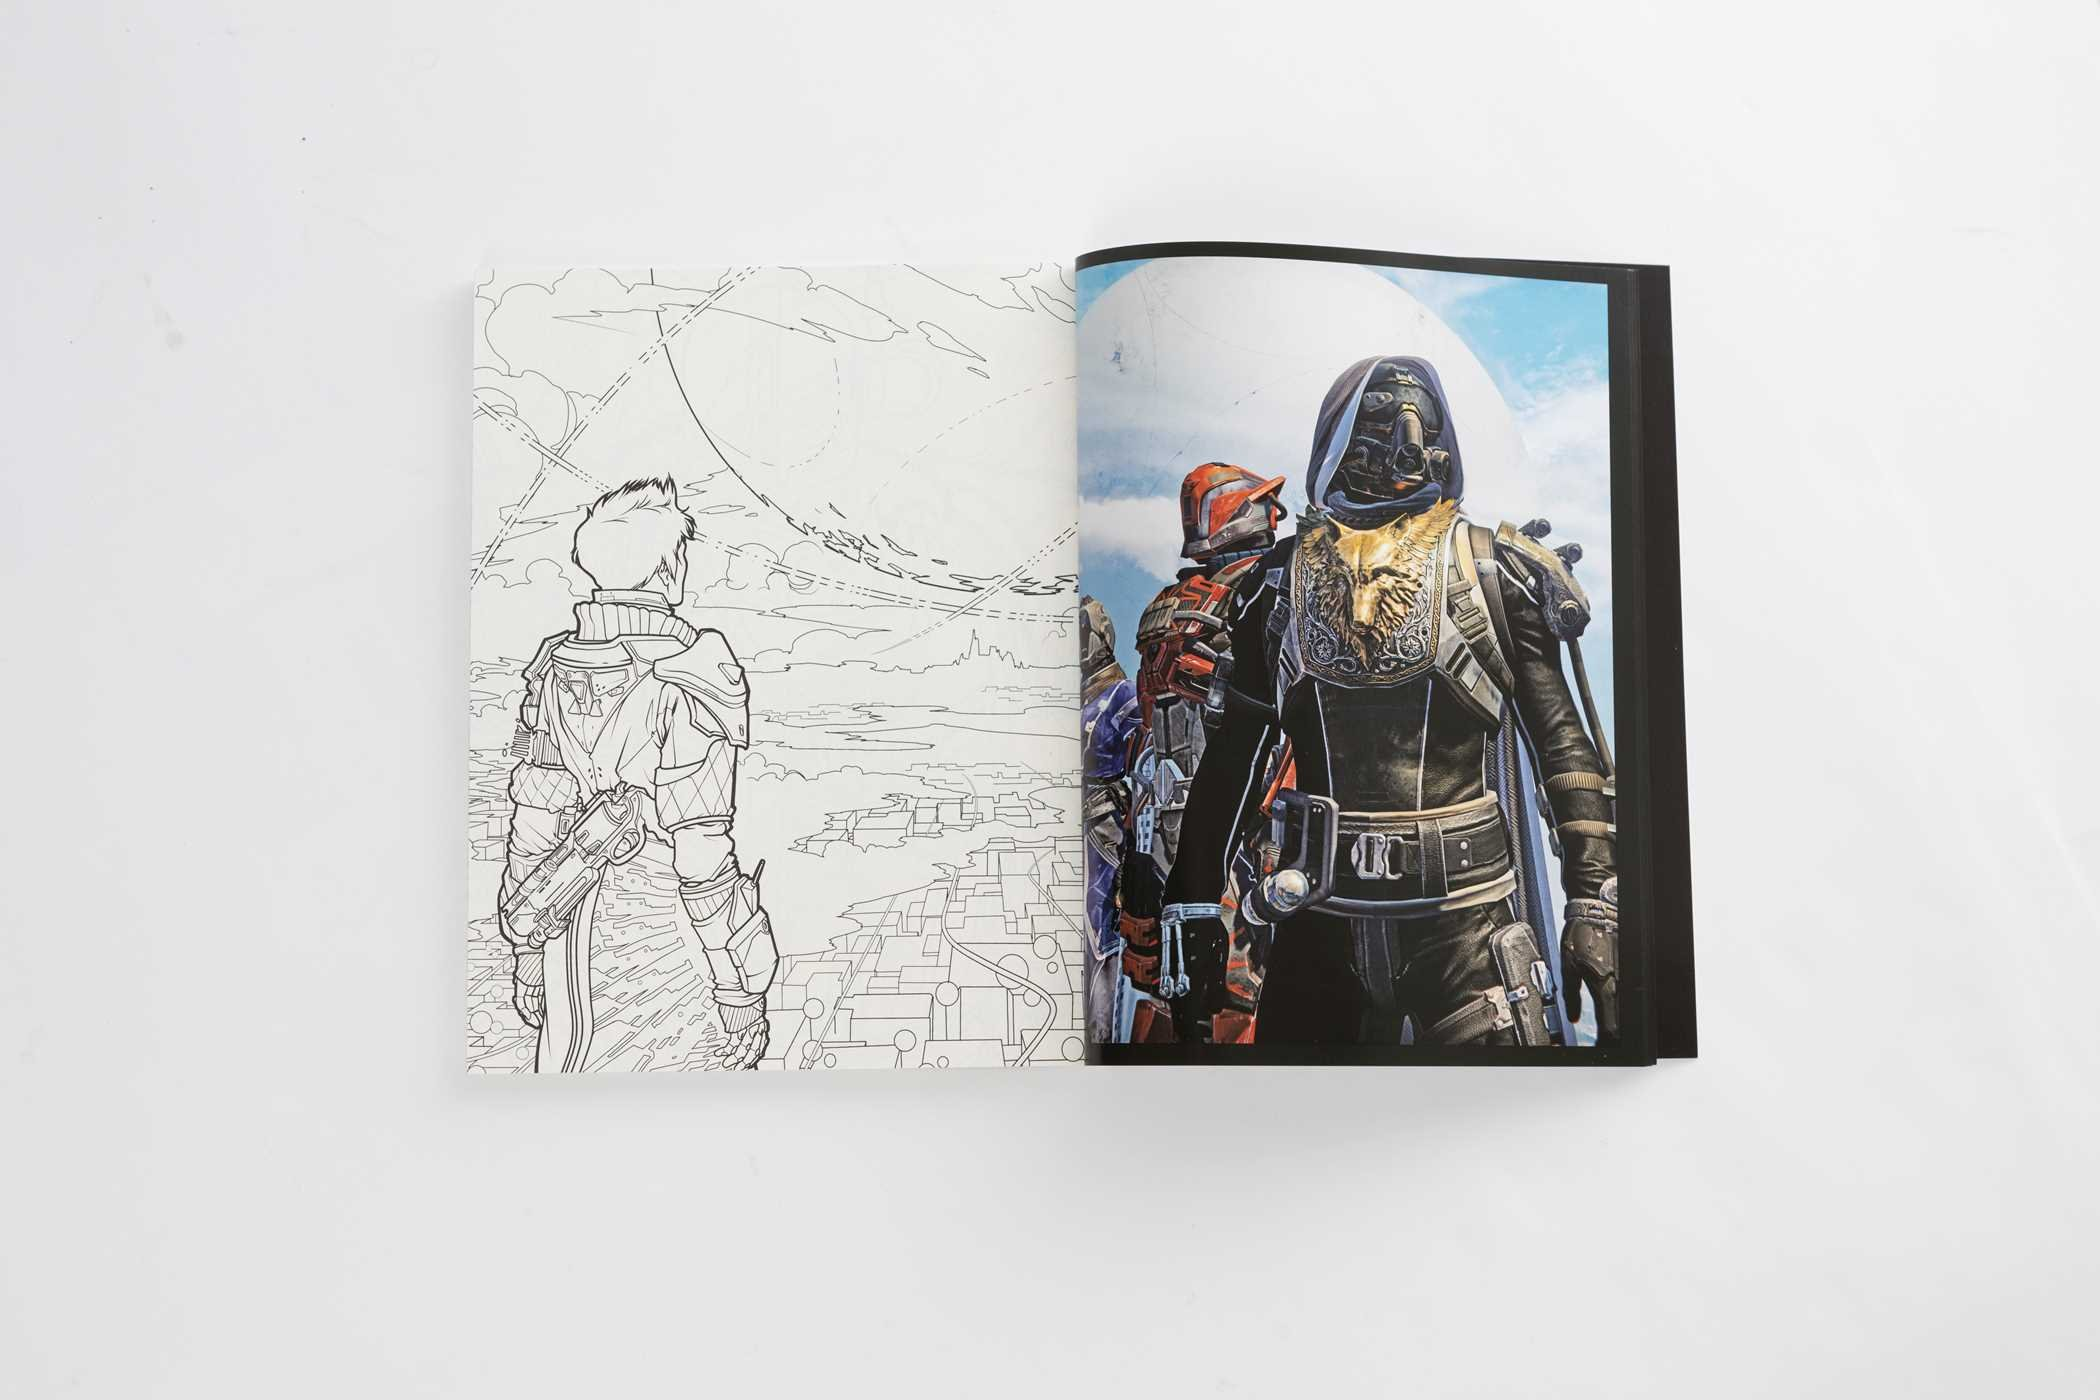 Destiny The Official Coloring Book Colouring Books Amazoncouk Bungie 9781608879229